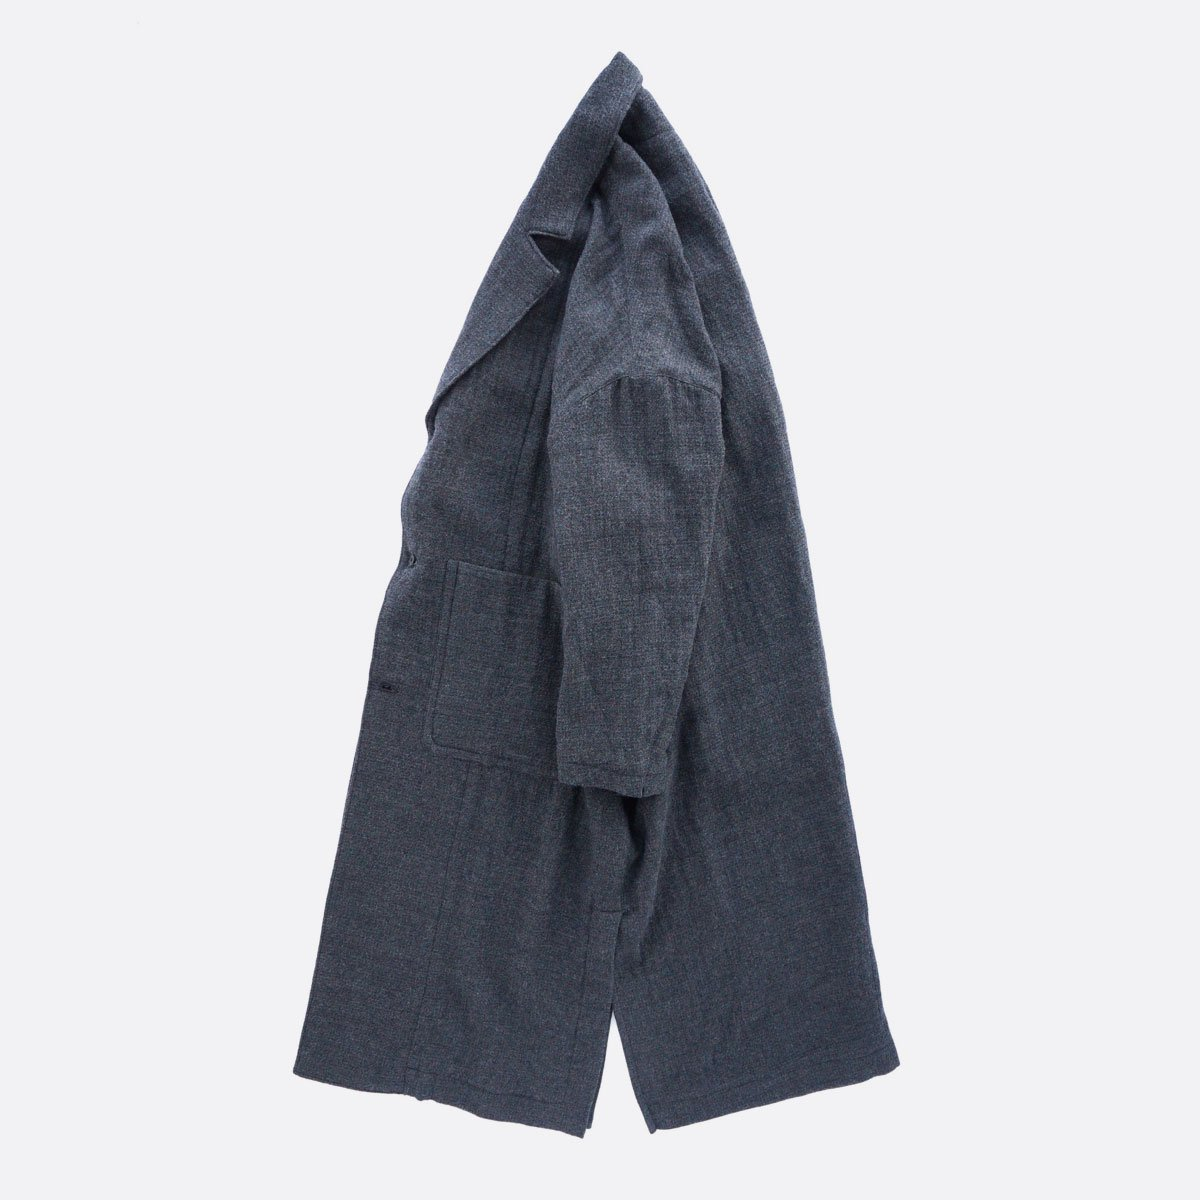 FIRMUM WORSTED WOOL & COTTON DOBBY DOUBLE CLOTH COAT (GREY&BLACK)3